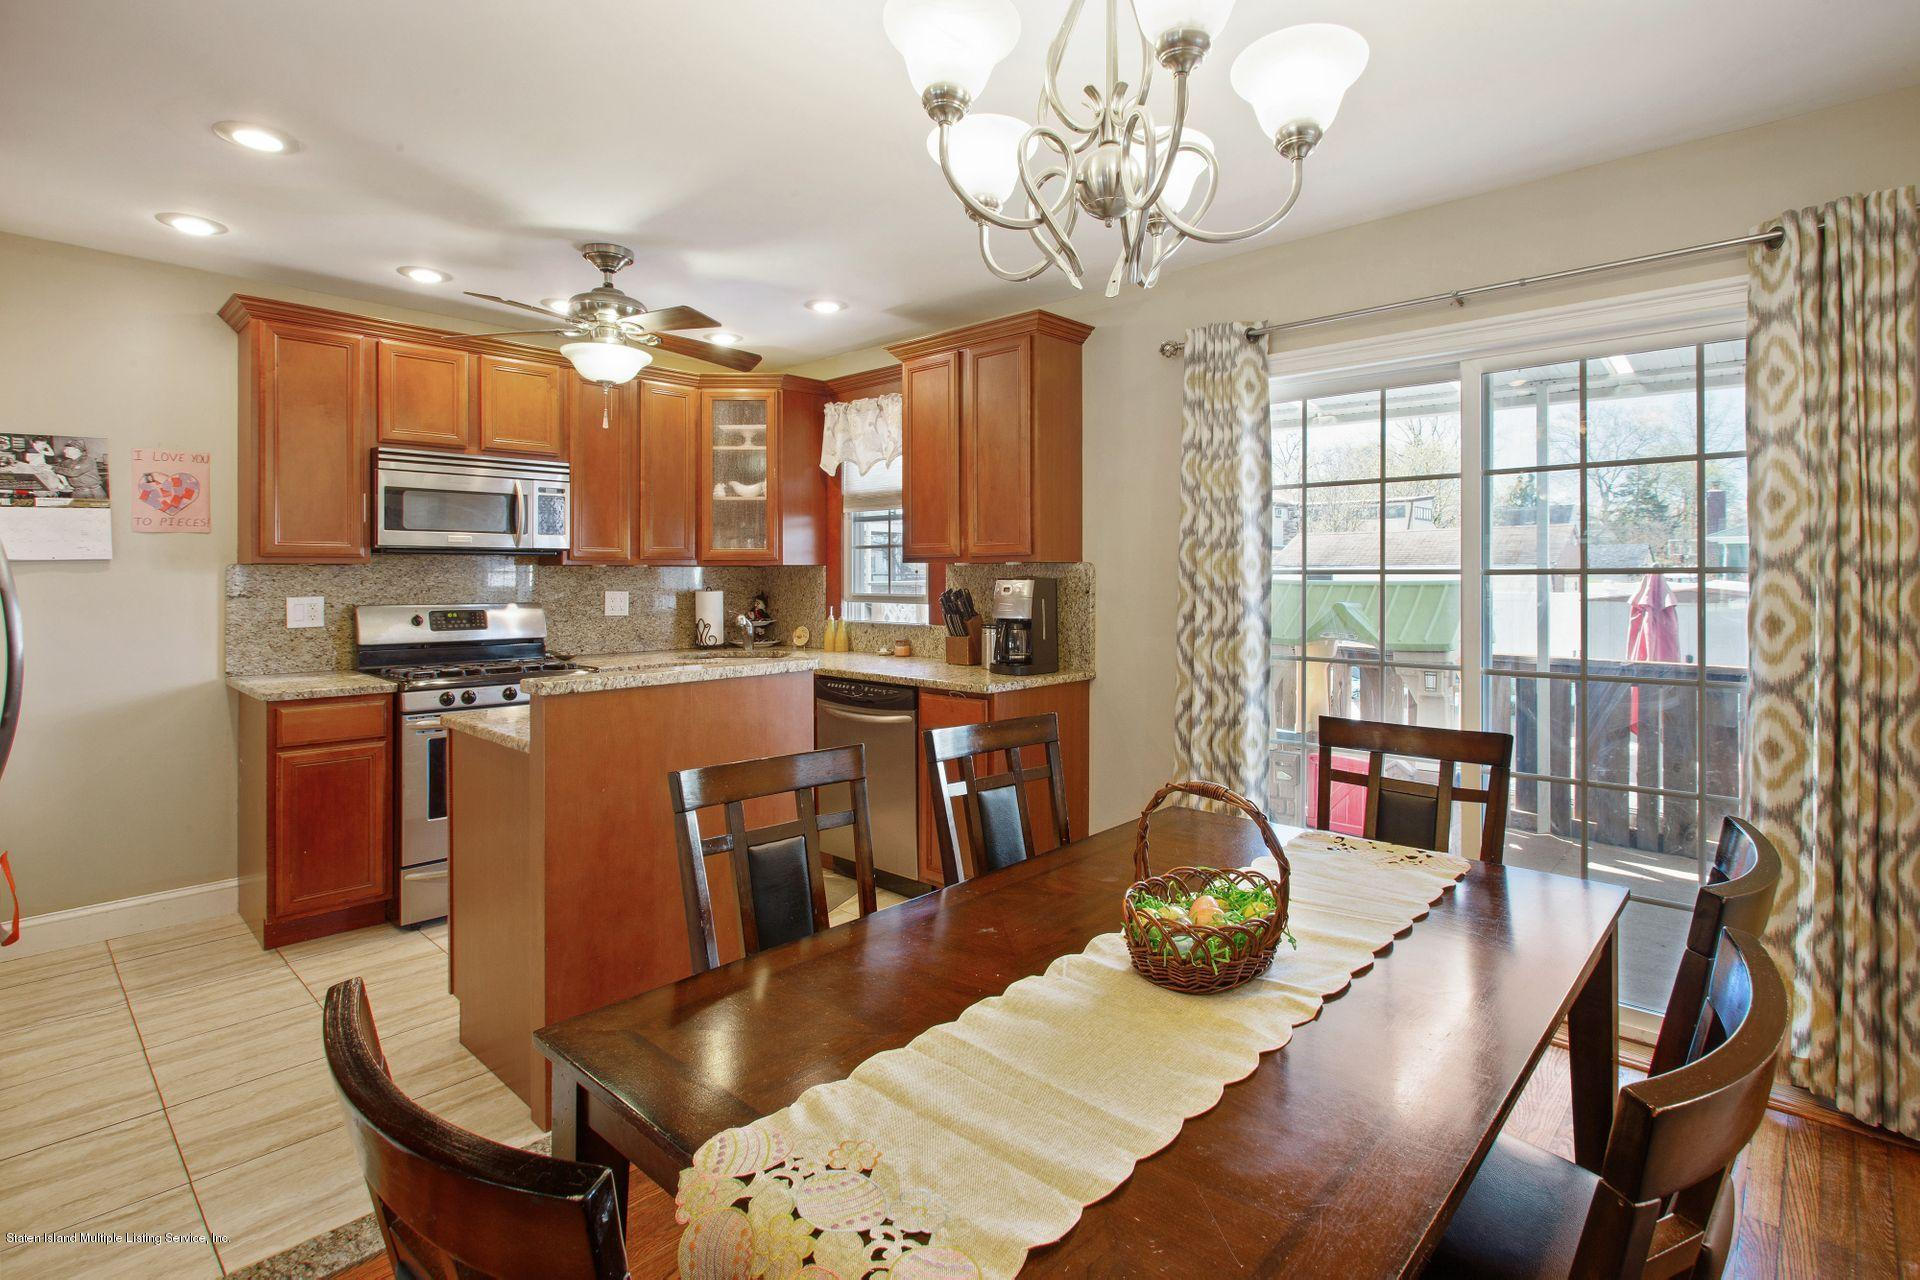 Single Family - Detached 252 Waters Avenue  Staten Island, NY 10314, MLS-1128050-14